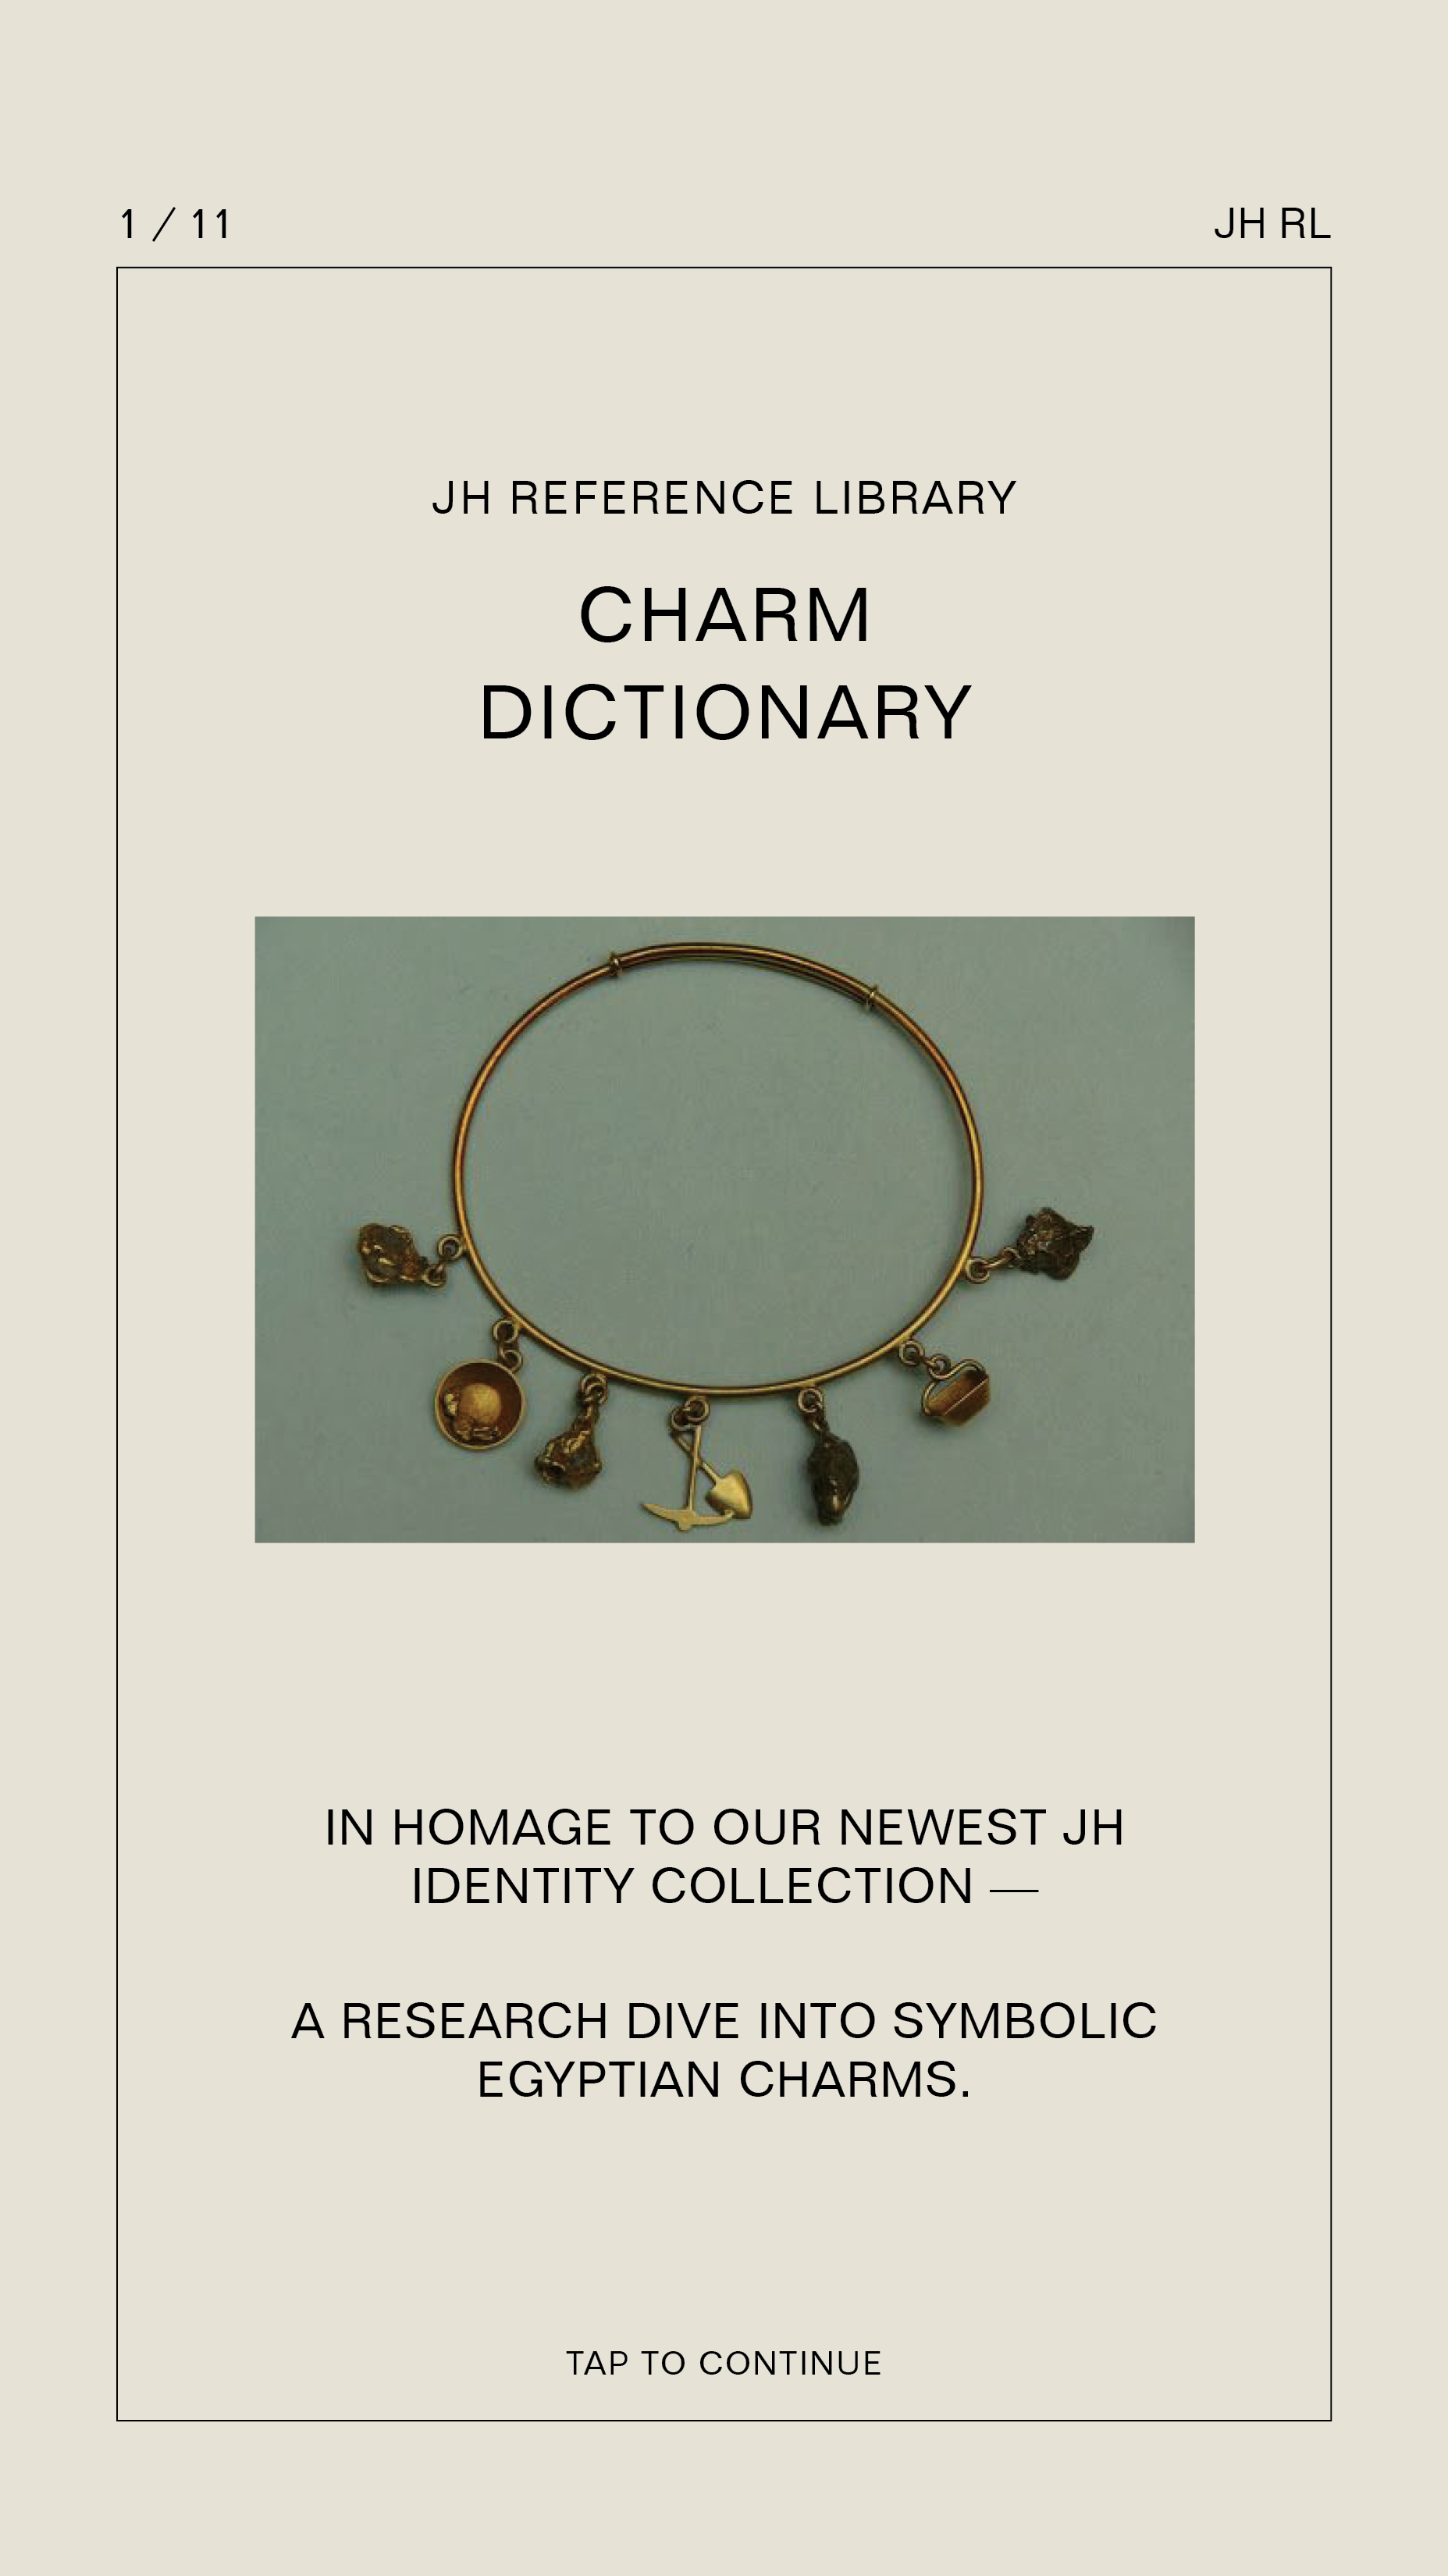 JH Reference Library - Charm Dictionary1.jpg